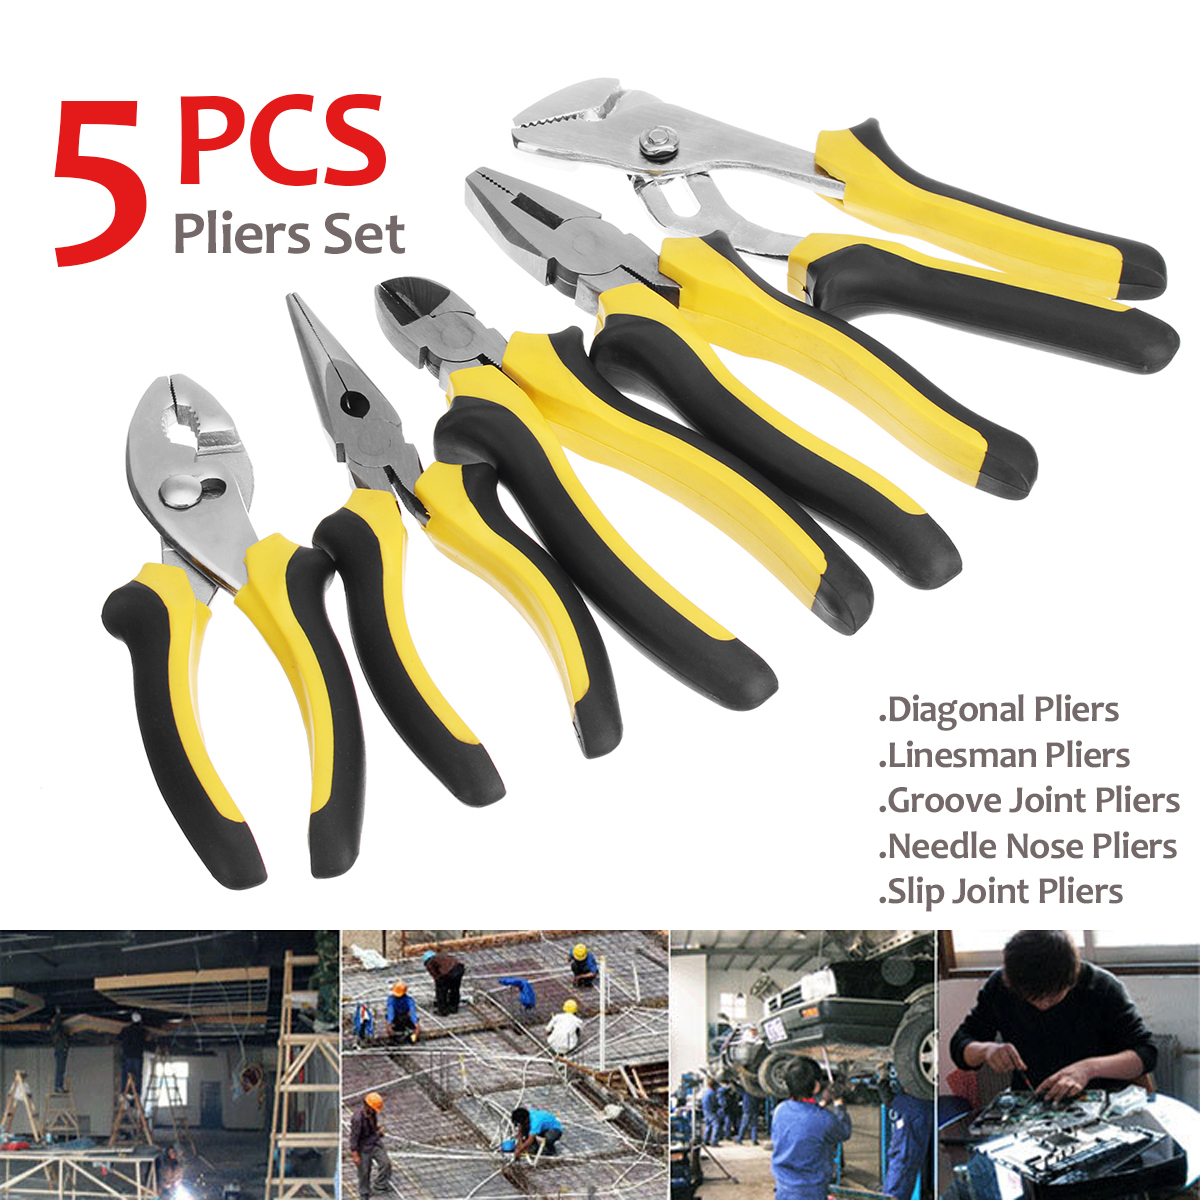 5Pcs Mini Diagonal Nose Pliers Electrician Wire Stripper Cable Cutter Plier Set Plumbing Crimping Long Nose Plier Hand Tool combination plier electrician repair mini hand home tool kit